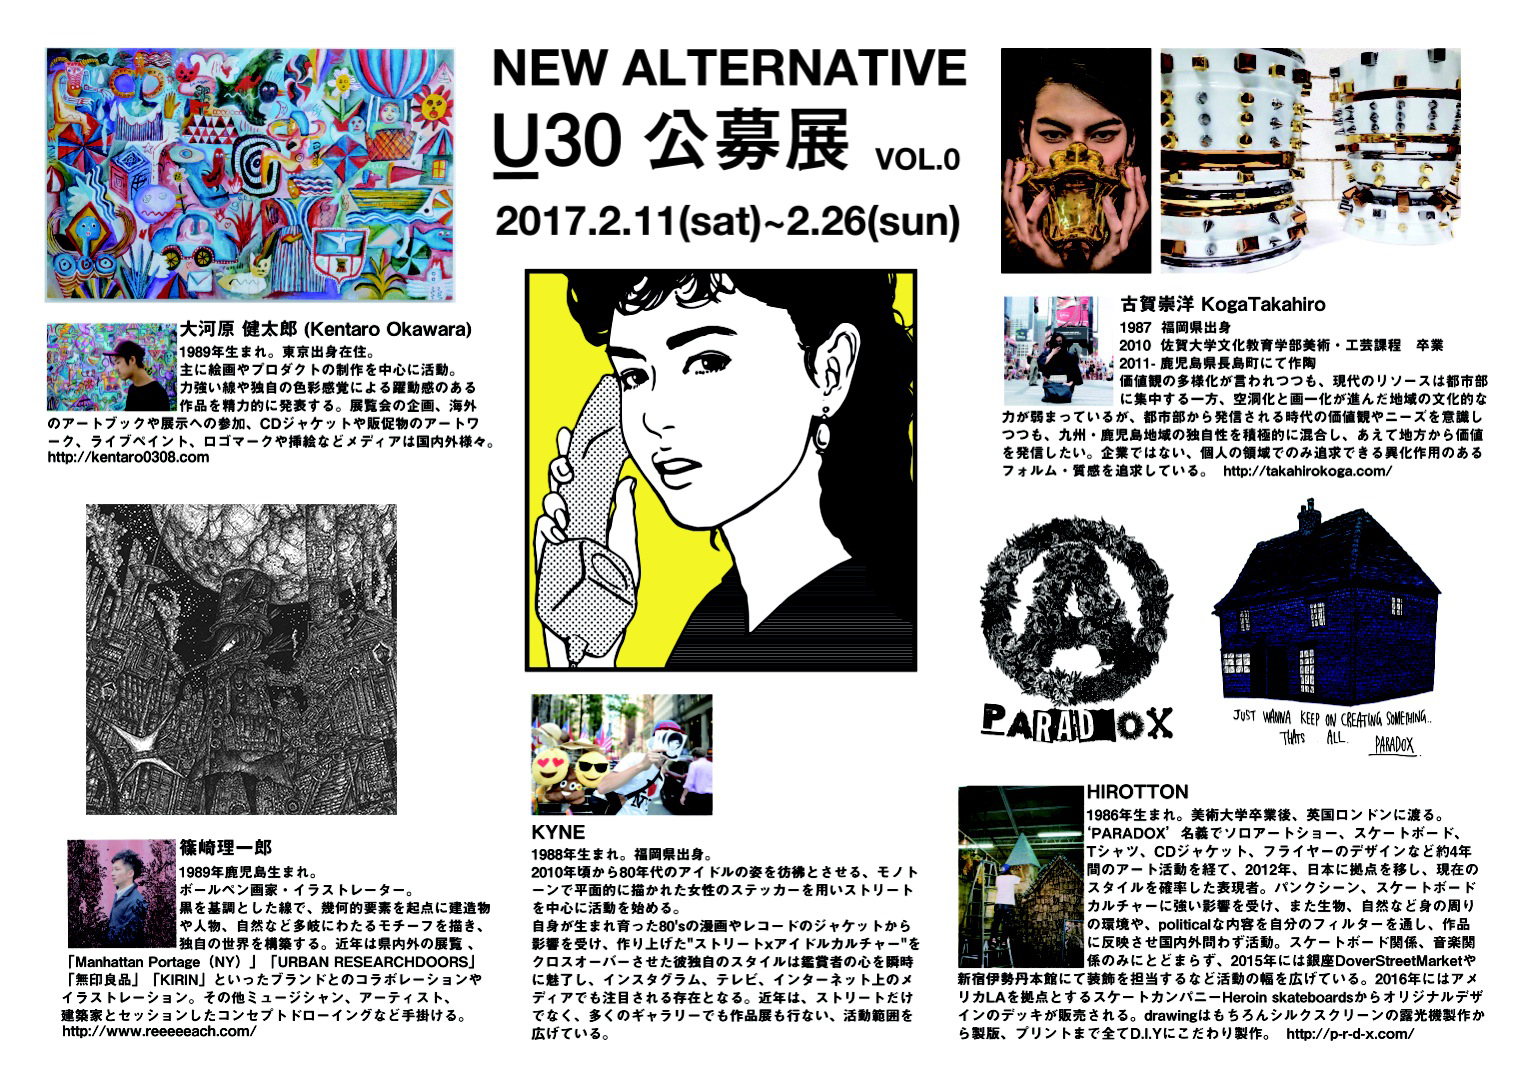 NEW ALTERNATIVE U30 公募展 VOL.0